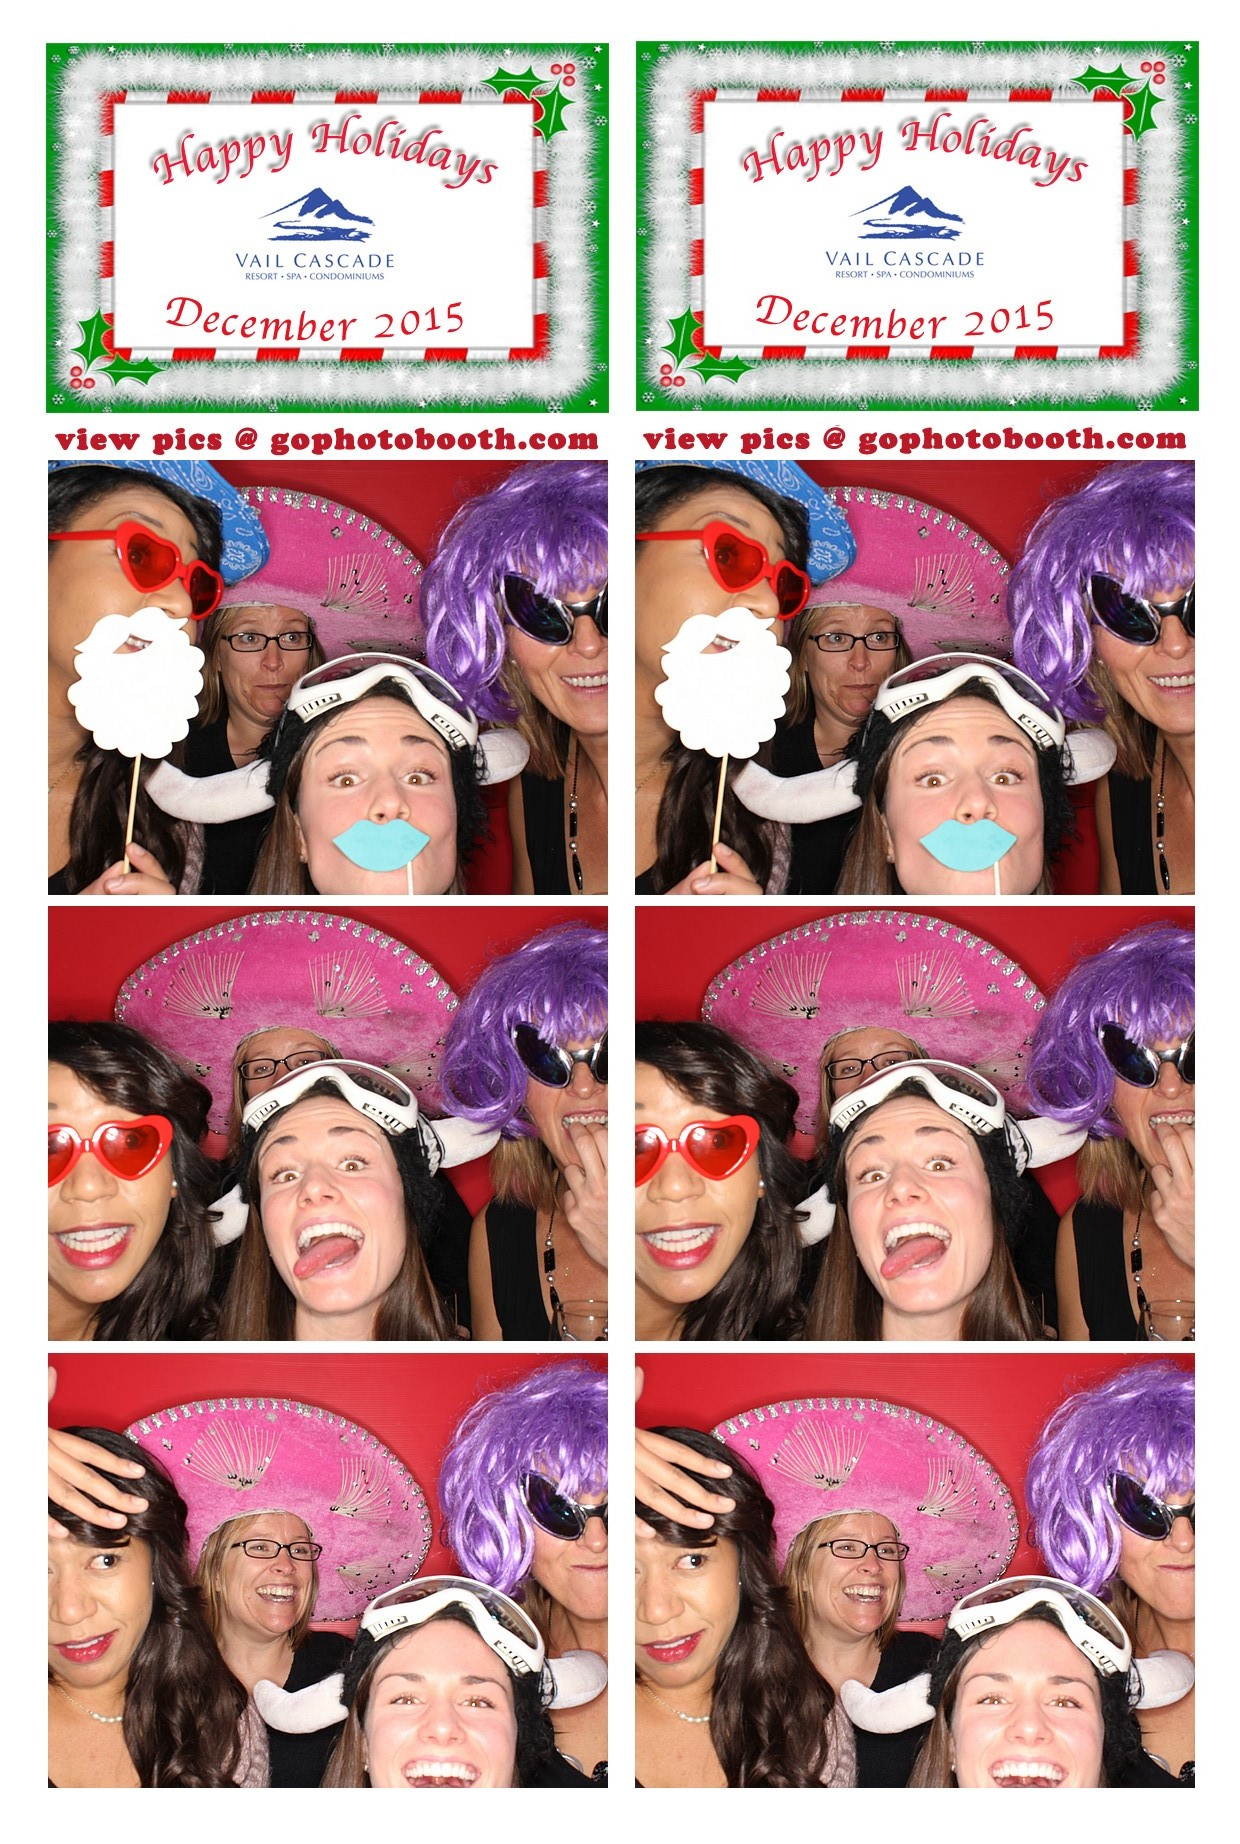 Cascade Resort Vail Photo Booth 12/15/15